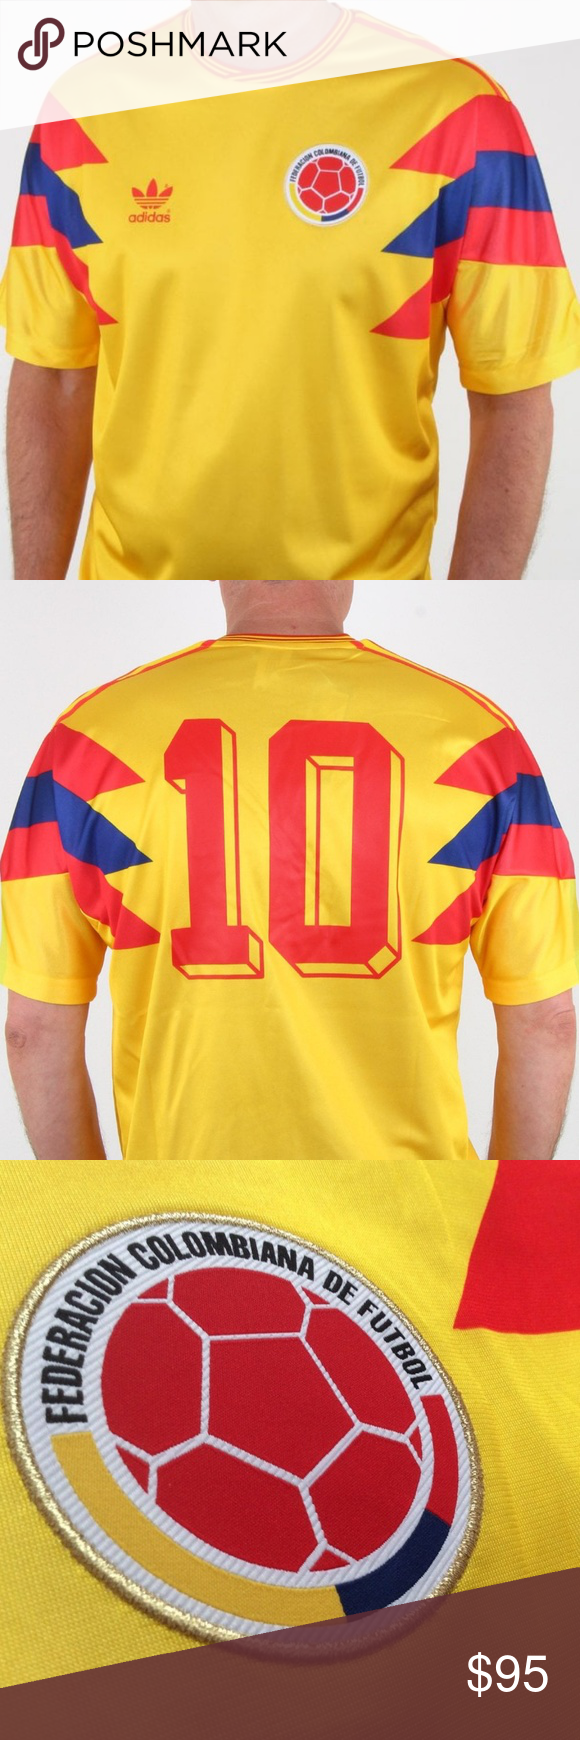 Adidas Colombia 1990 Jersey  10 Carlos Valderrama Brand New With Tags Adidas  Colombia 1990 World 4fad95c90